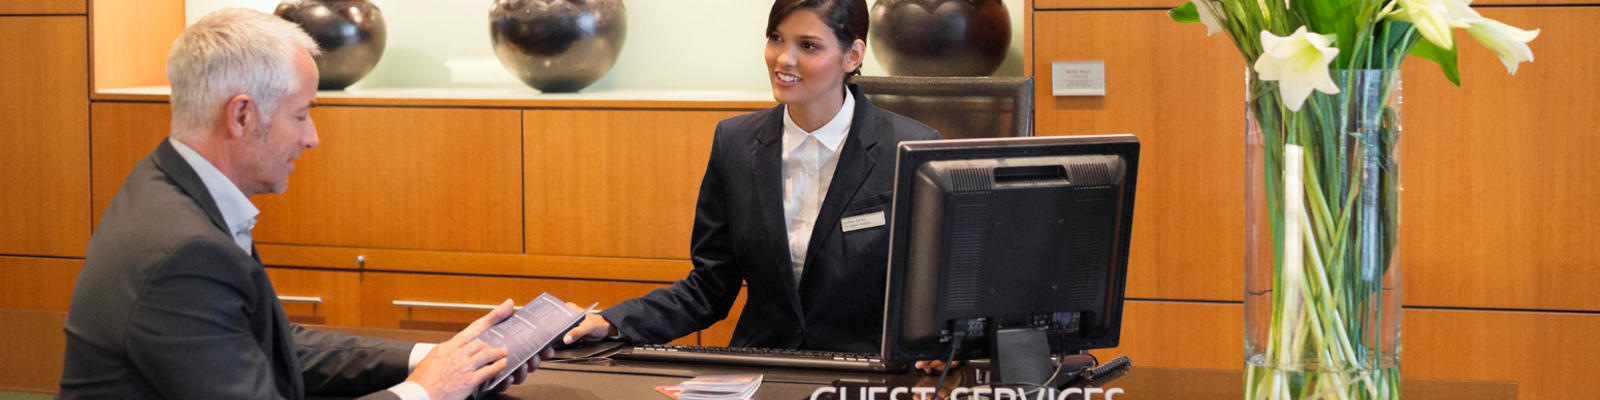 A professional man getting assistance at the hotel Guest Services desk